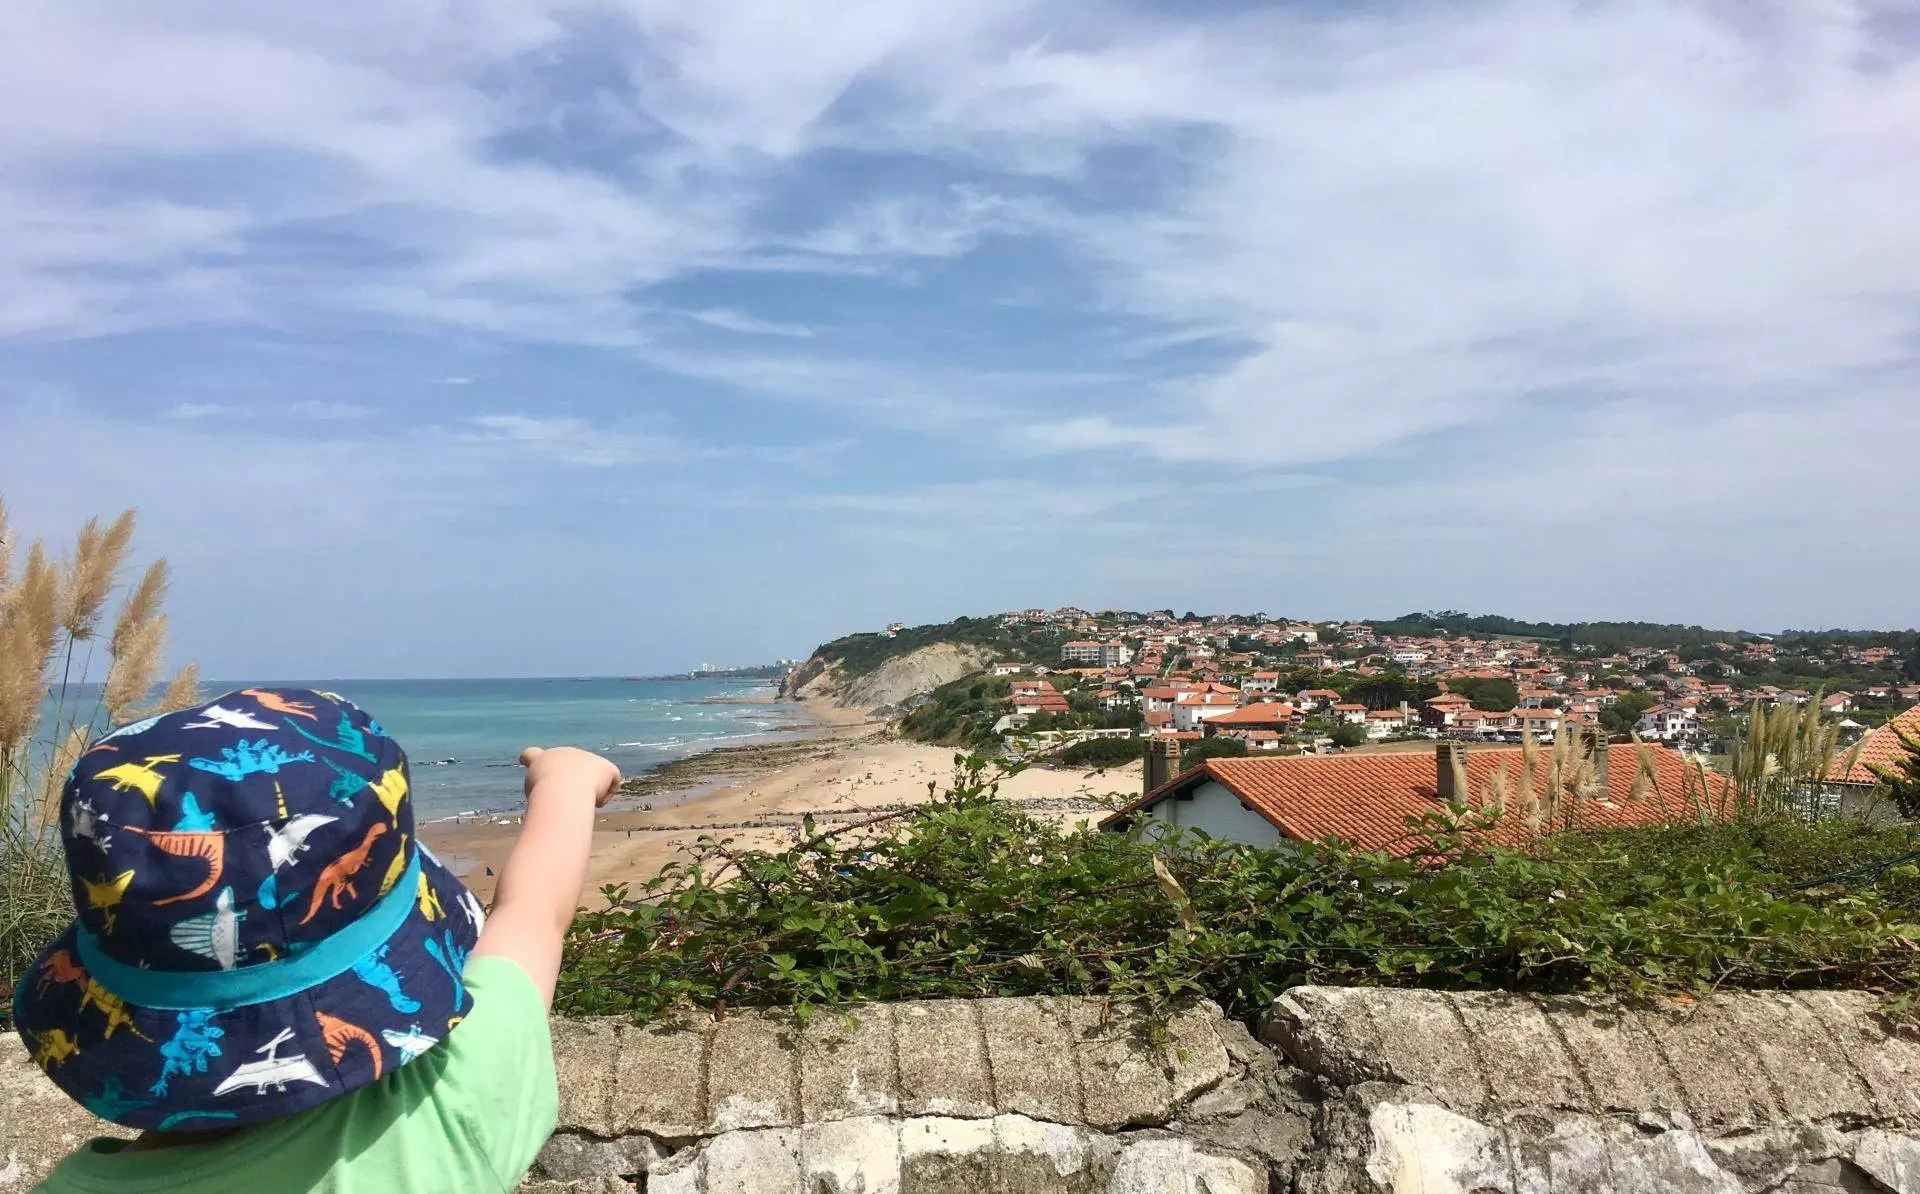 adventures of a gluten free globetrekker Went - Ate - Loved: August 2017 France Monthly Round Up Travel with kids